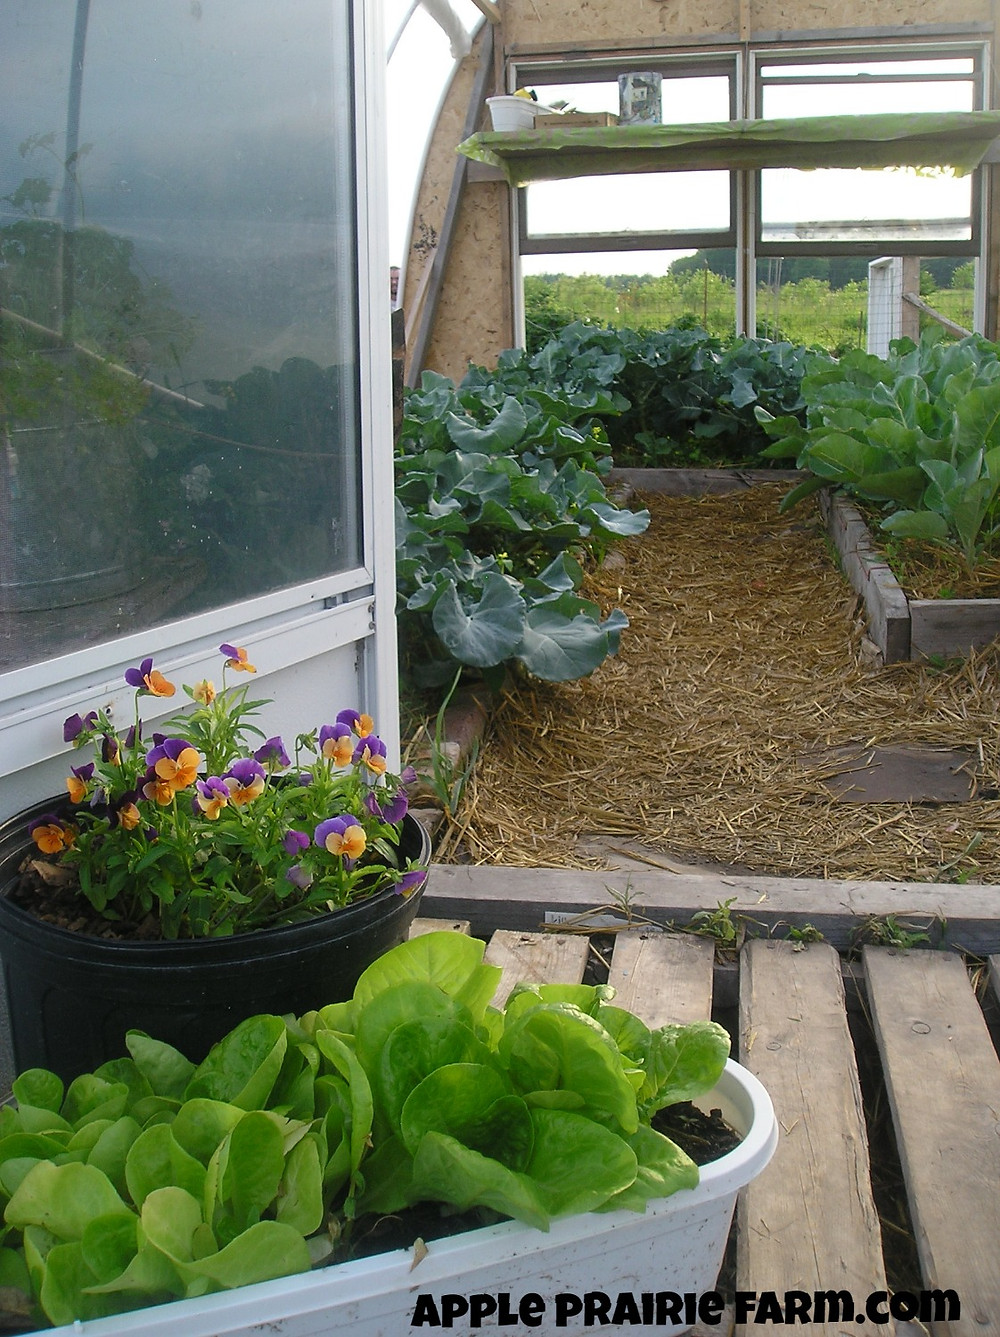 Hoop house, broccoli, cauliflower, pansies, companion planting, Little Gem Romaine Lettuce